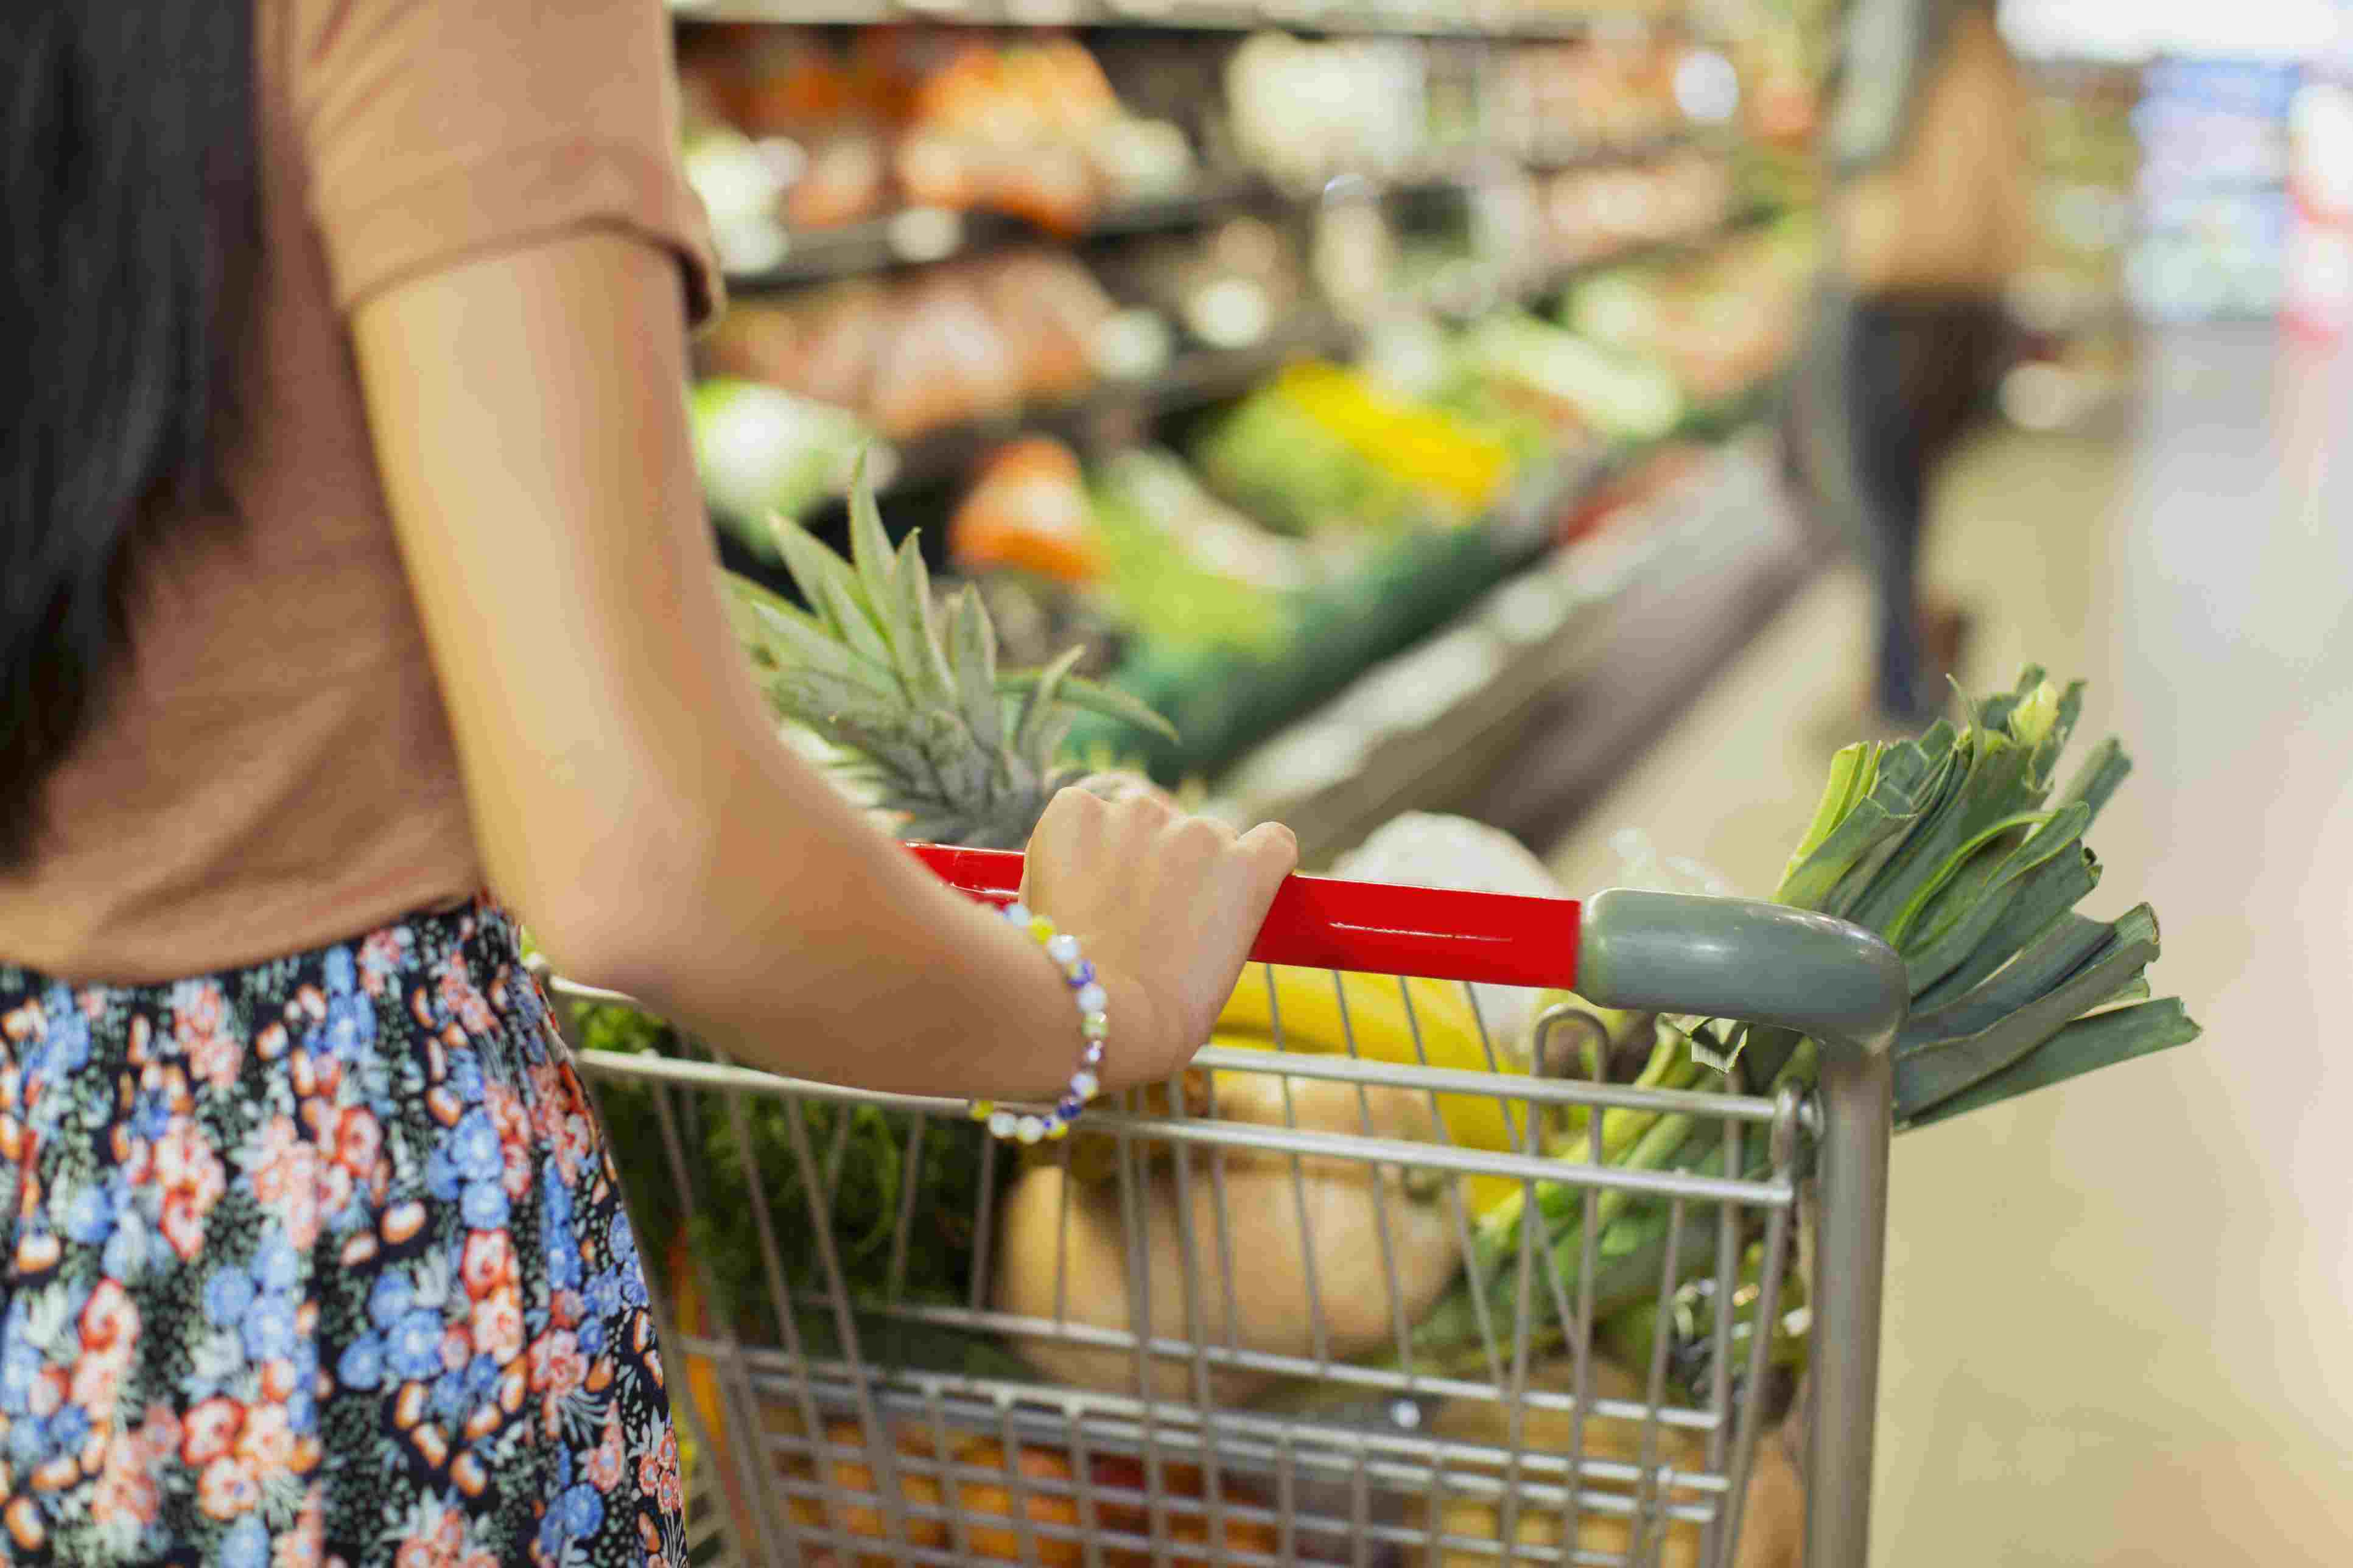 Close-up of woman pushing full shopping cart in grocery store